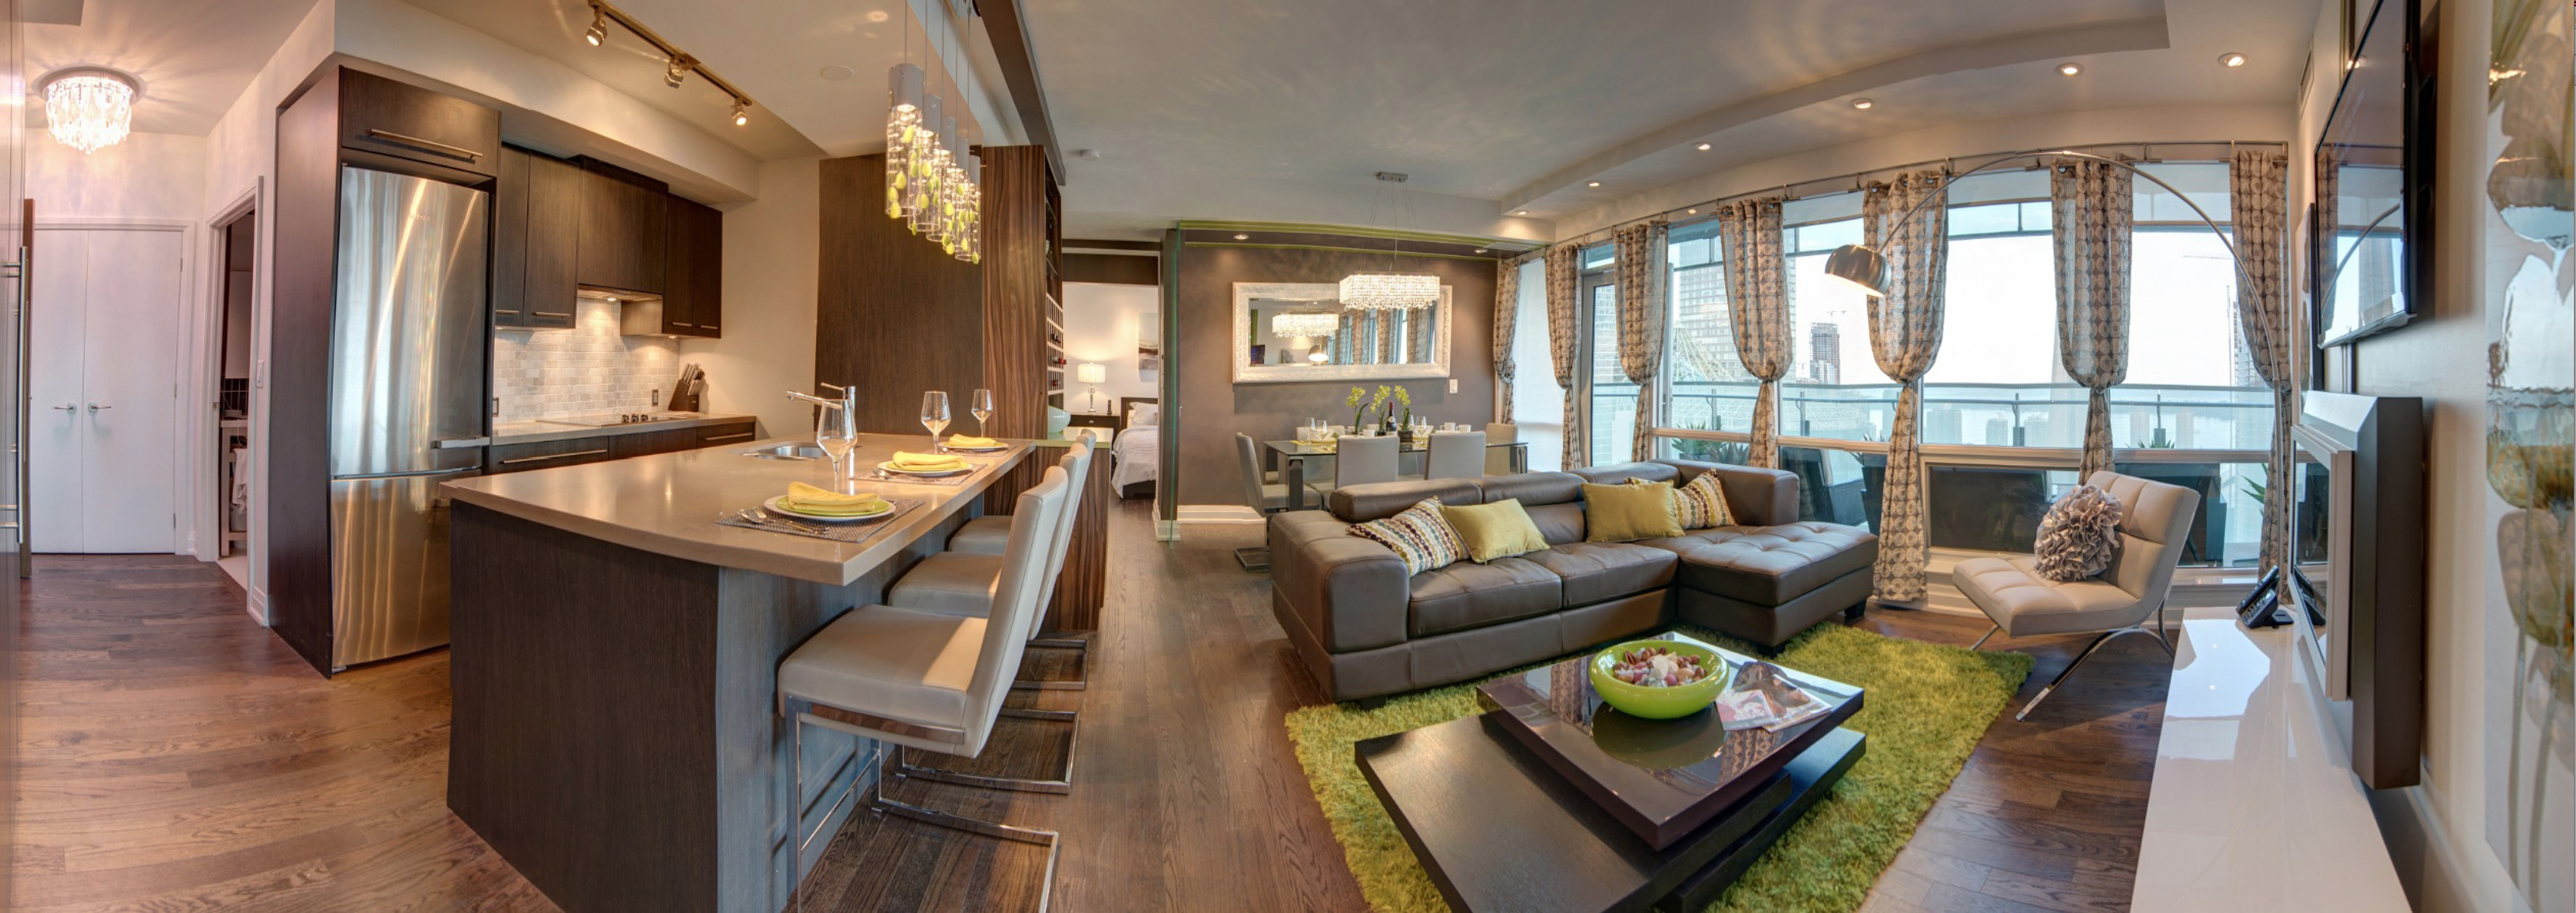 Image result for Short-Term Furnished Apartments